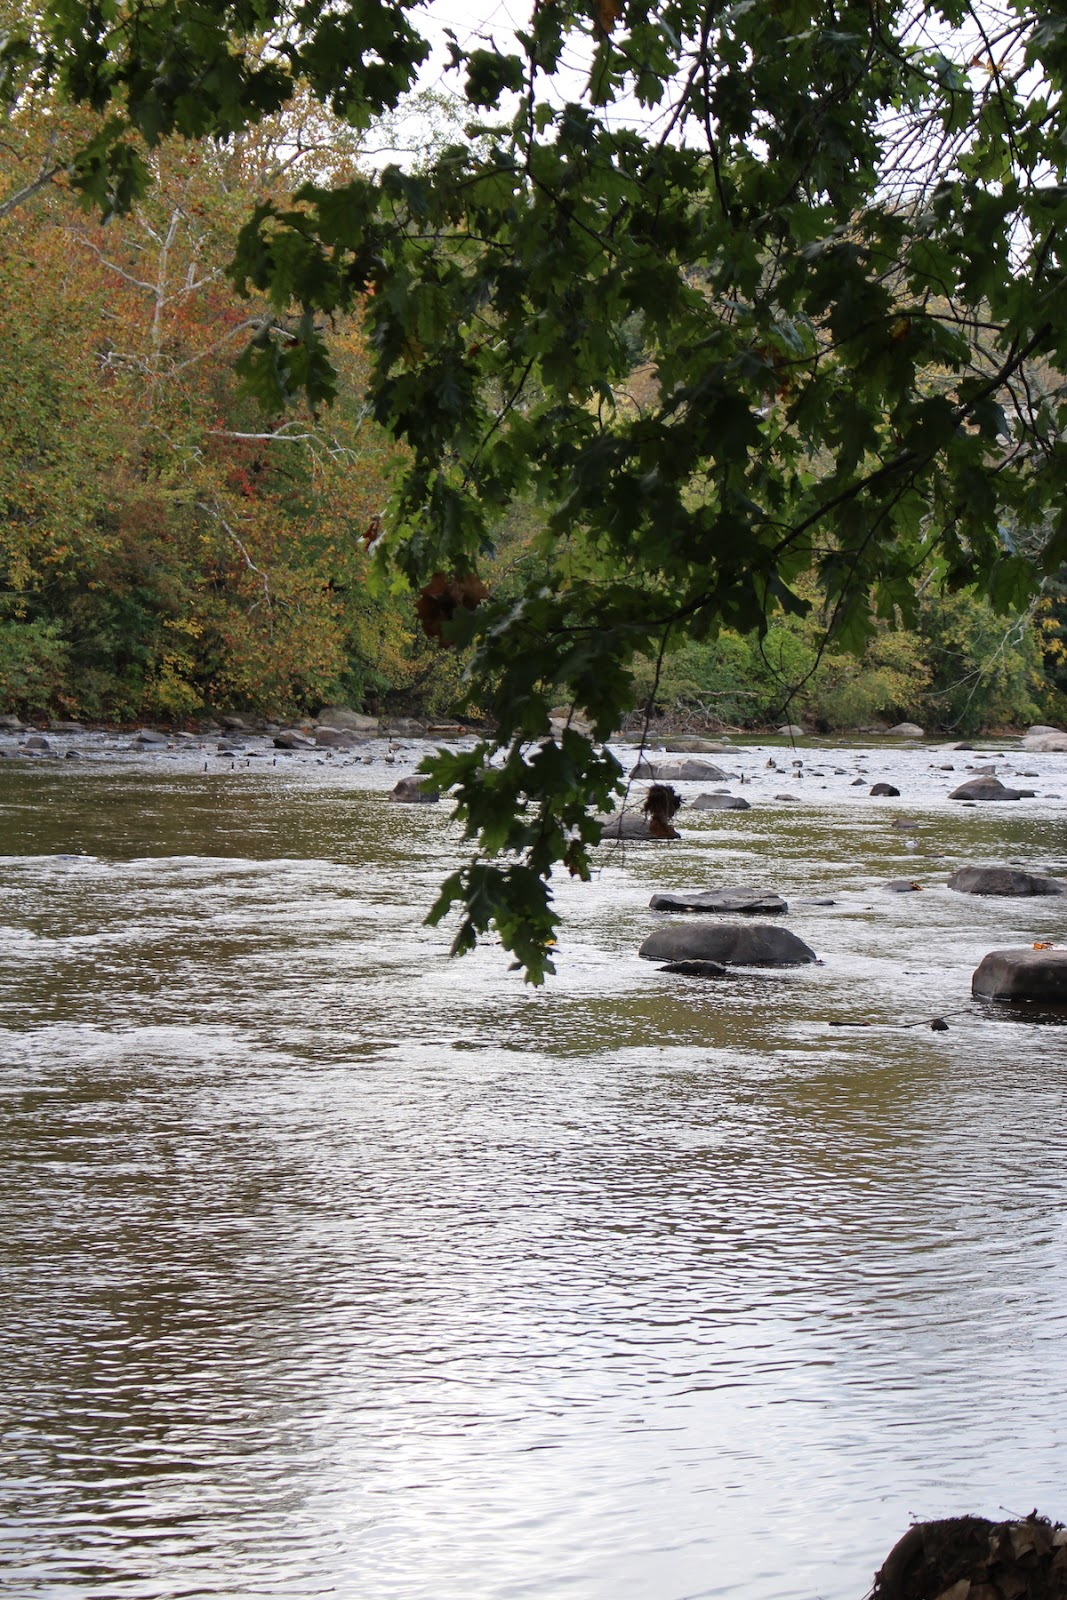 This is a beautiful view of the Brandywine Park river.